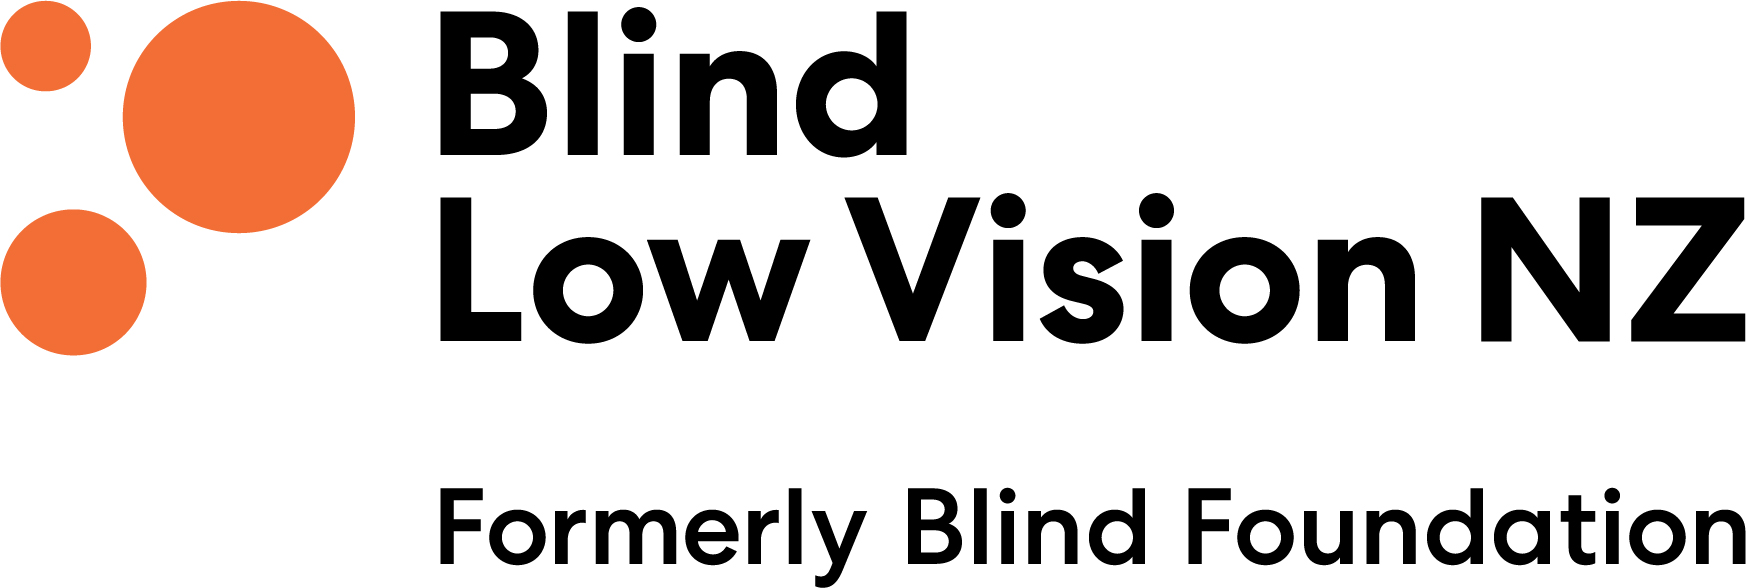 Blind Low Vision NZ